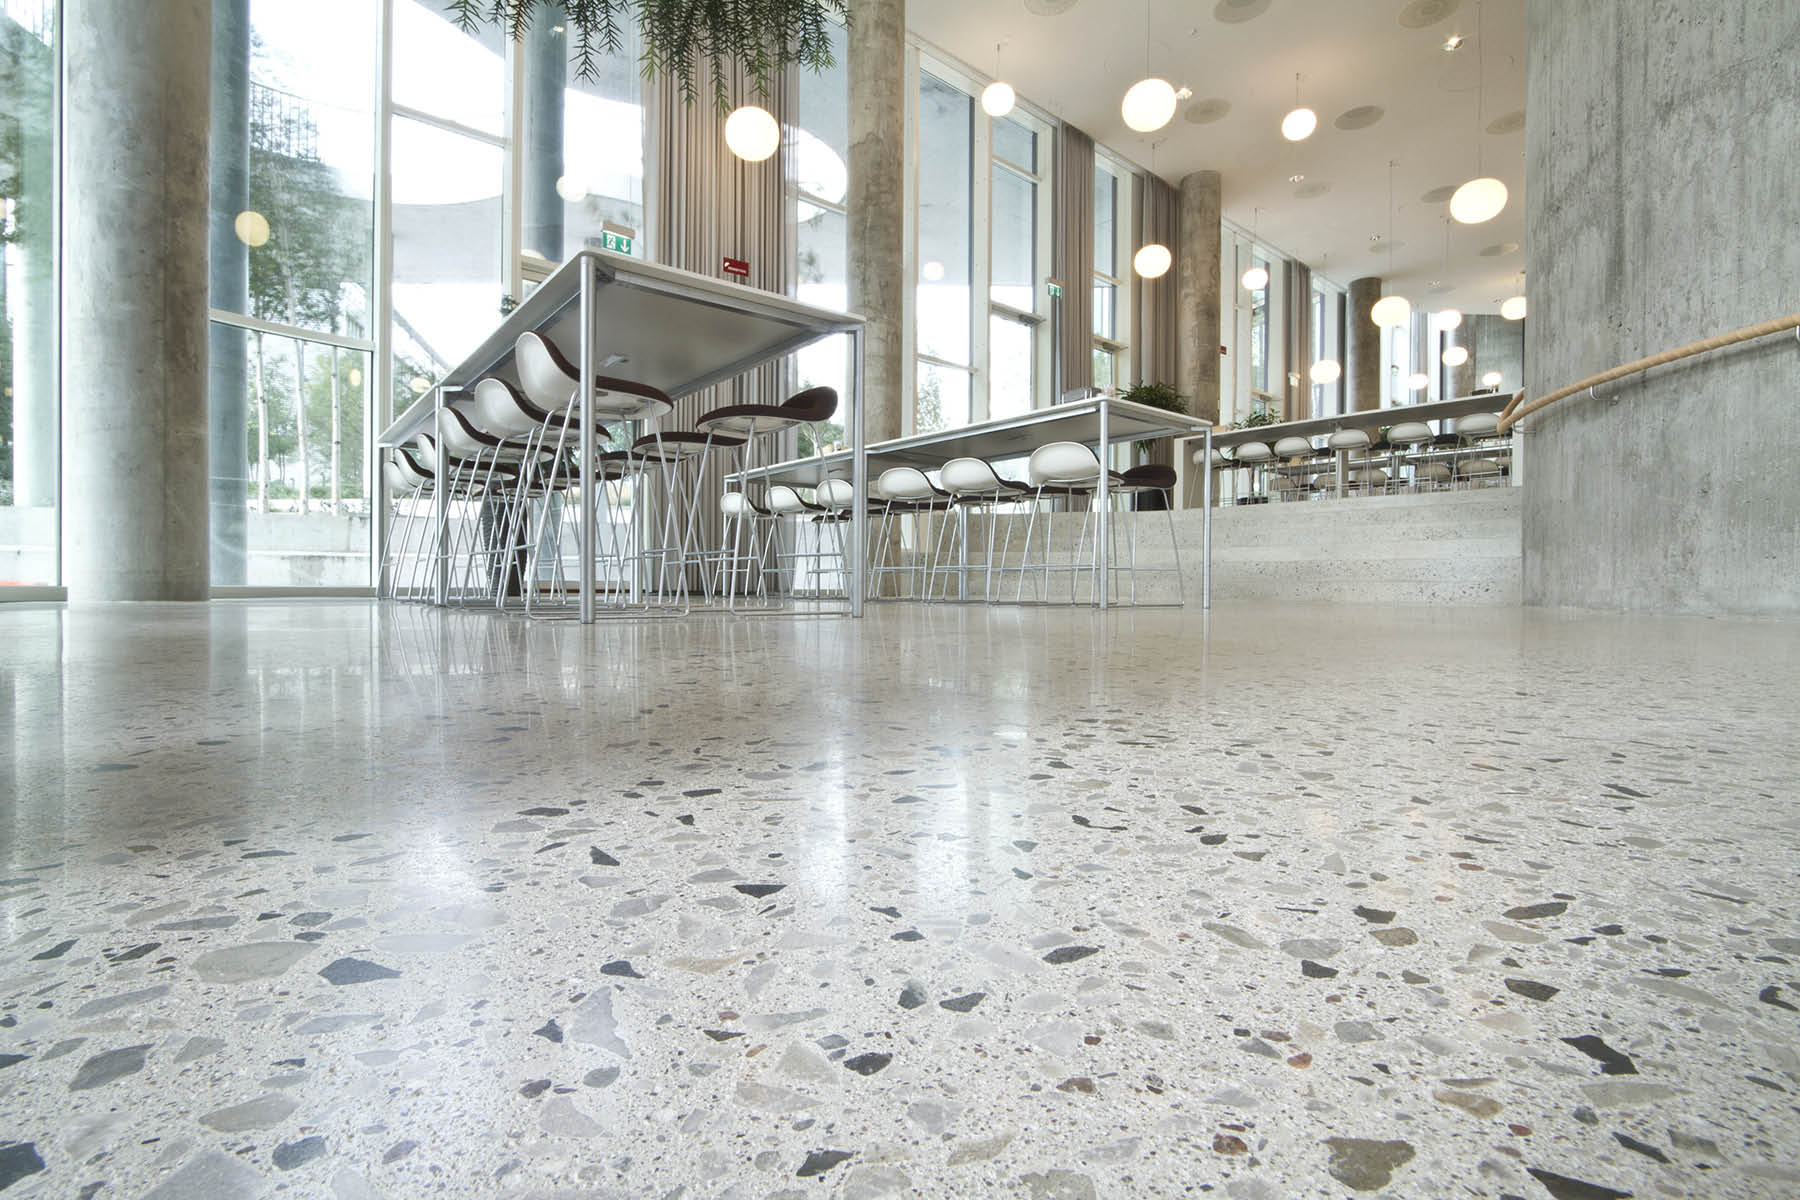 How to Clean a Polished Concrete Floor